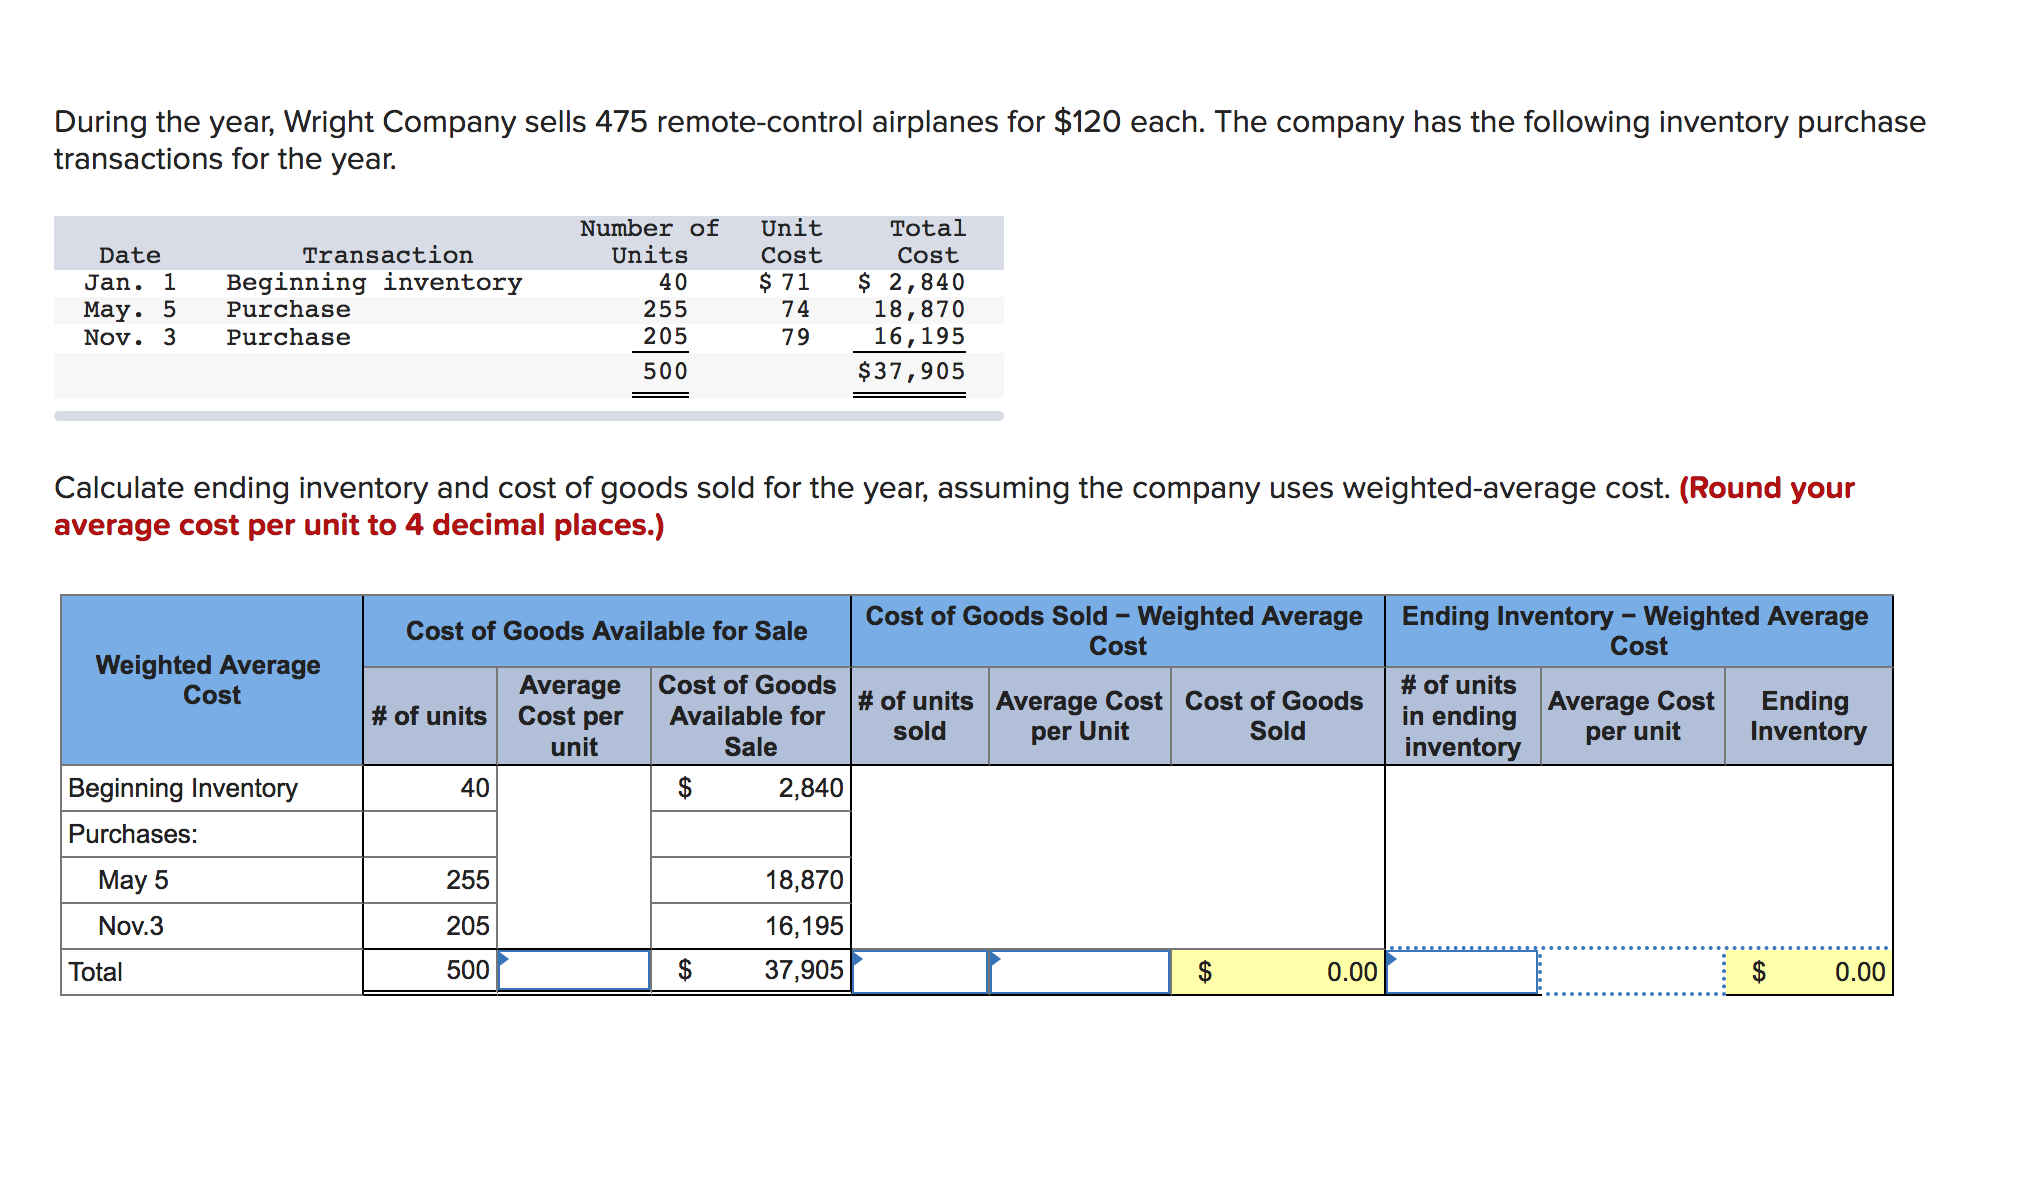 During the year, Wright Company sells 475 remote-control airplanes for $120 each. The company has the following inventory purchase transactions for the year. Number 0f Units Unit Total Transaction Date Cost Cost $ 2,840 18,870 16,195 $ 71 Beginning inventory Purchase 40 Jan. 1 Маy. 5 Nov. 3 255 74 205 Purchase 79 $37,905 500 Calculate ending inventory and cost of goods sold for the year, assuming the company uses weighted-average cost. (Round your average cost per unit to 4 decimal places.) Cost of Goods Sold - Weighted Average Ending Inventory-Weighted Average Cost of Goods Available for Sale Cost Cost Weighted Average Cost Cost of Goods# of units Average Cost Cost of Goods Available for Average Cost per #of units in ending Average Cost inventory Ending Inventory #of units Sold sold per Unit per unit Sale unit Beginning Inventory 2,840 40 Purchases: 18,870 May 5 255 Nov.3 16,195 205 37,905 500 Total $ 0.00 0.00 $ .....